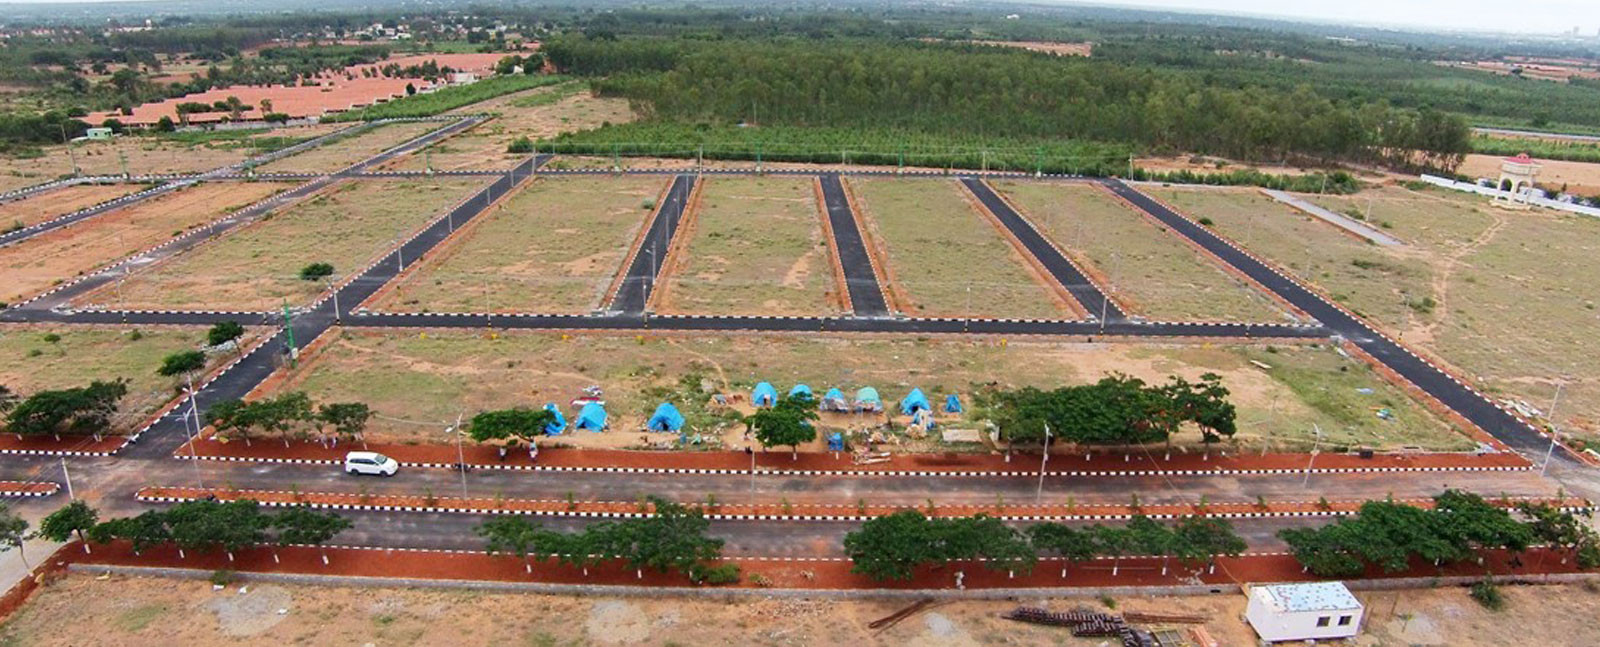 Plots for Sale in Hoskote Bangalore | Plots near Whitefield